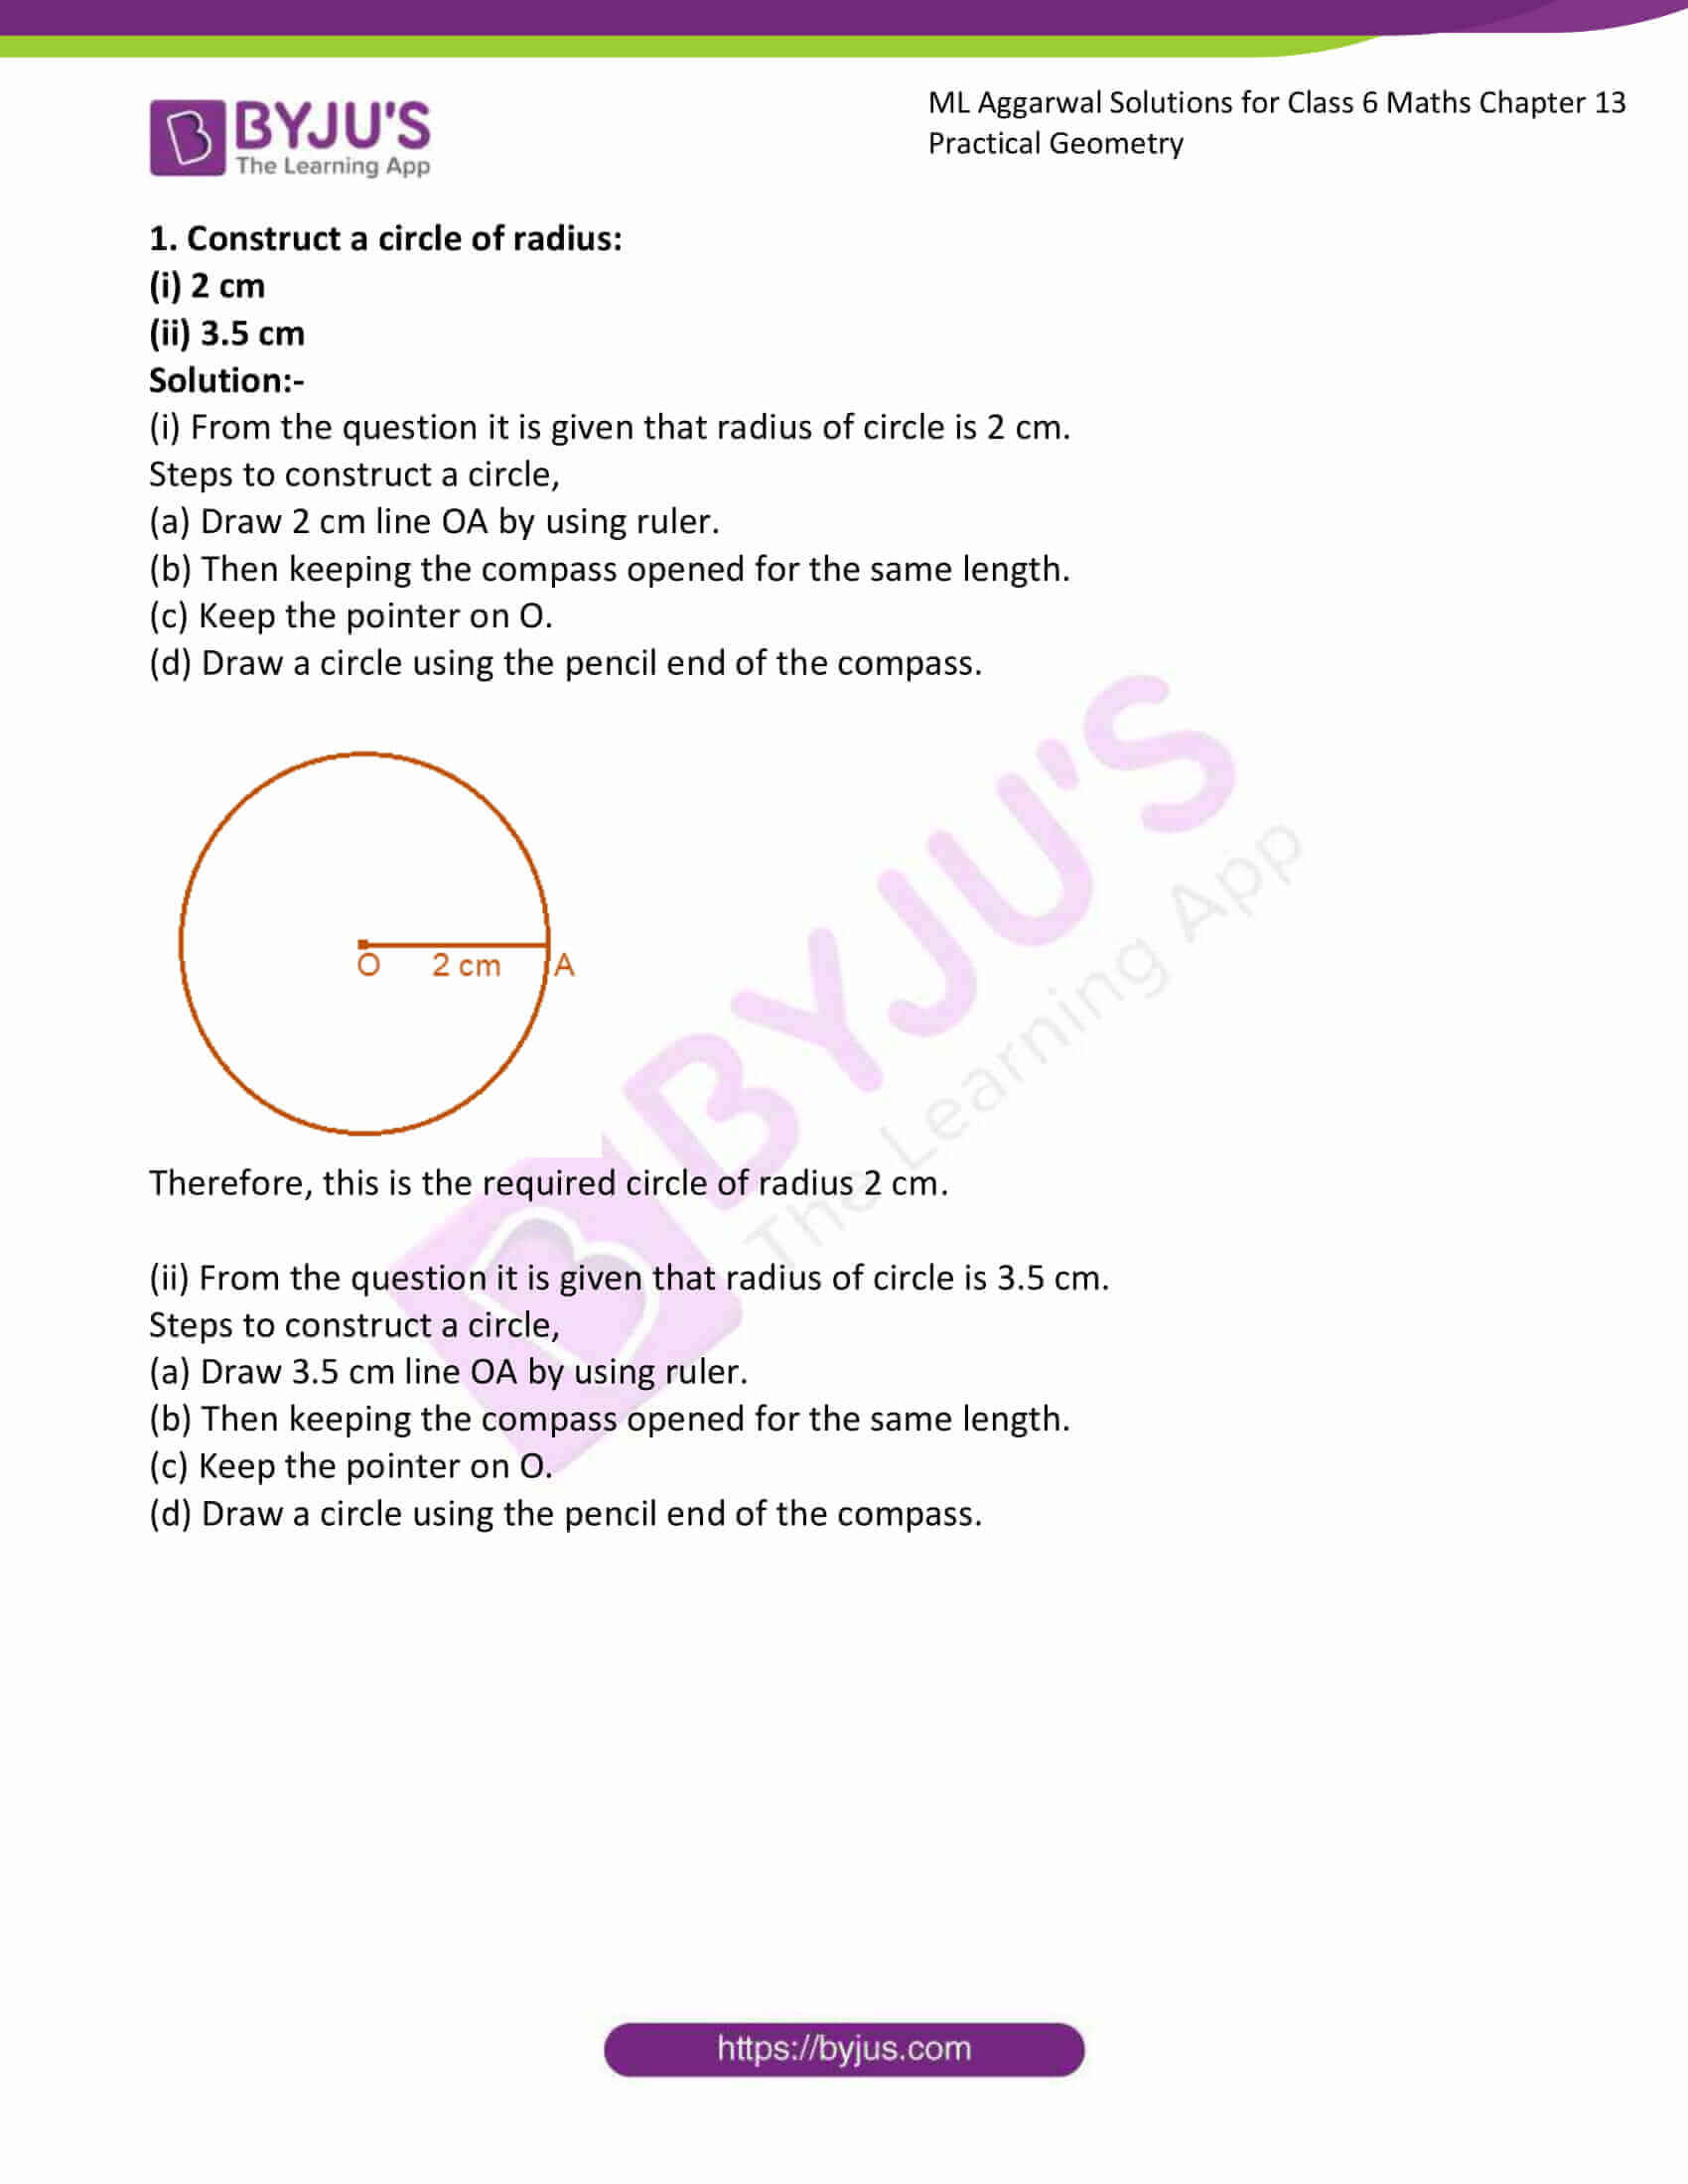 ml aggarwal solutions for class 6 maths chapter 13 1